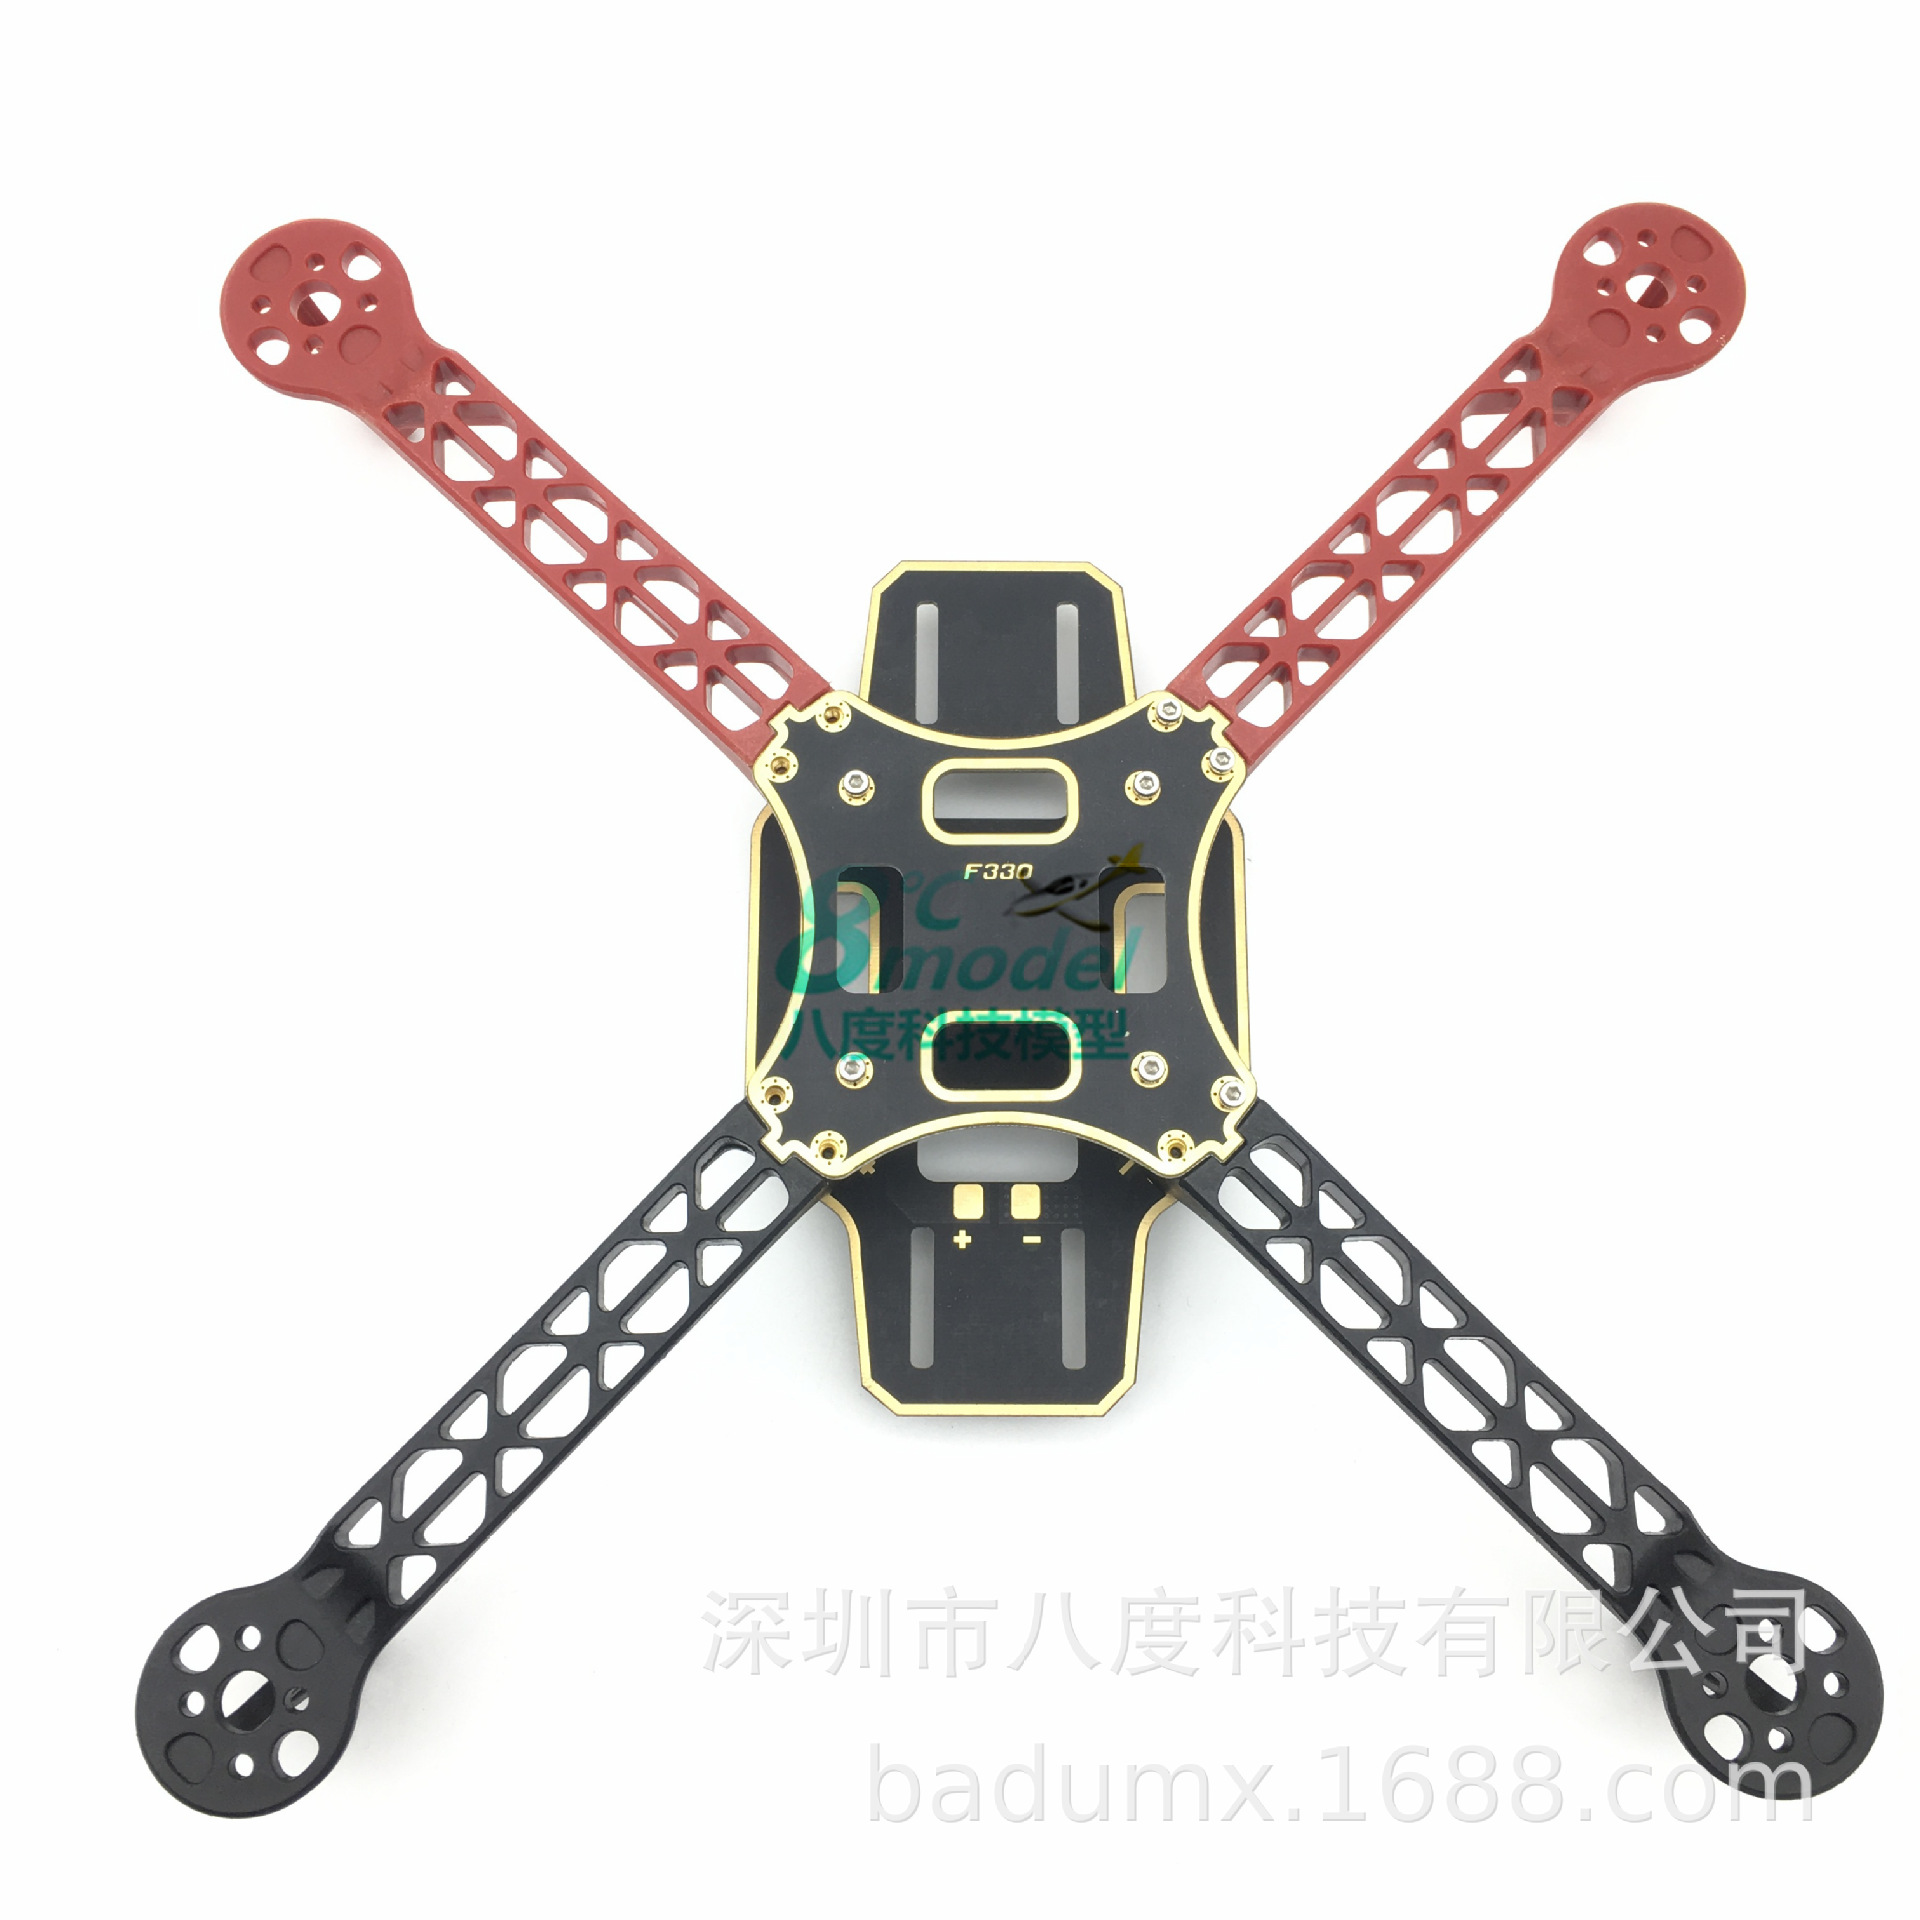 F330 Machine Bracket Four-Rotor Duo Zhou Ji Arm Foot Stool PCB Sink Golden Plate Unmanned Aerial Vehicle Aircraft Electronic Des